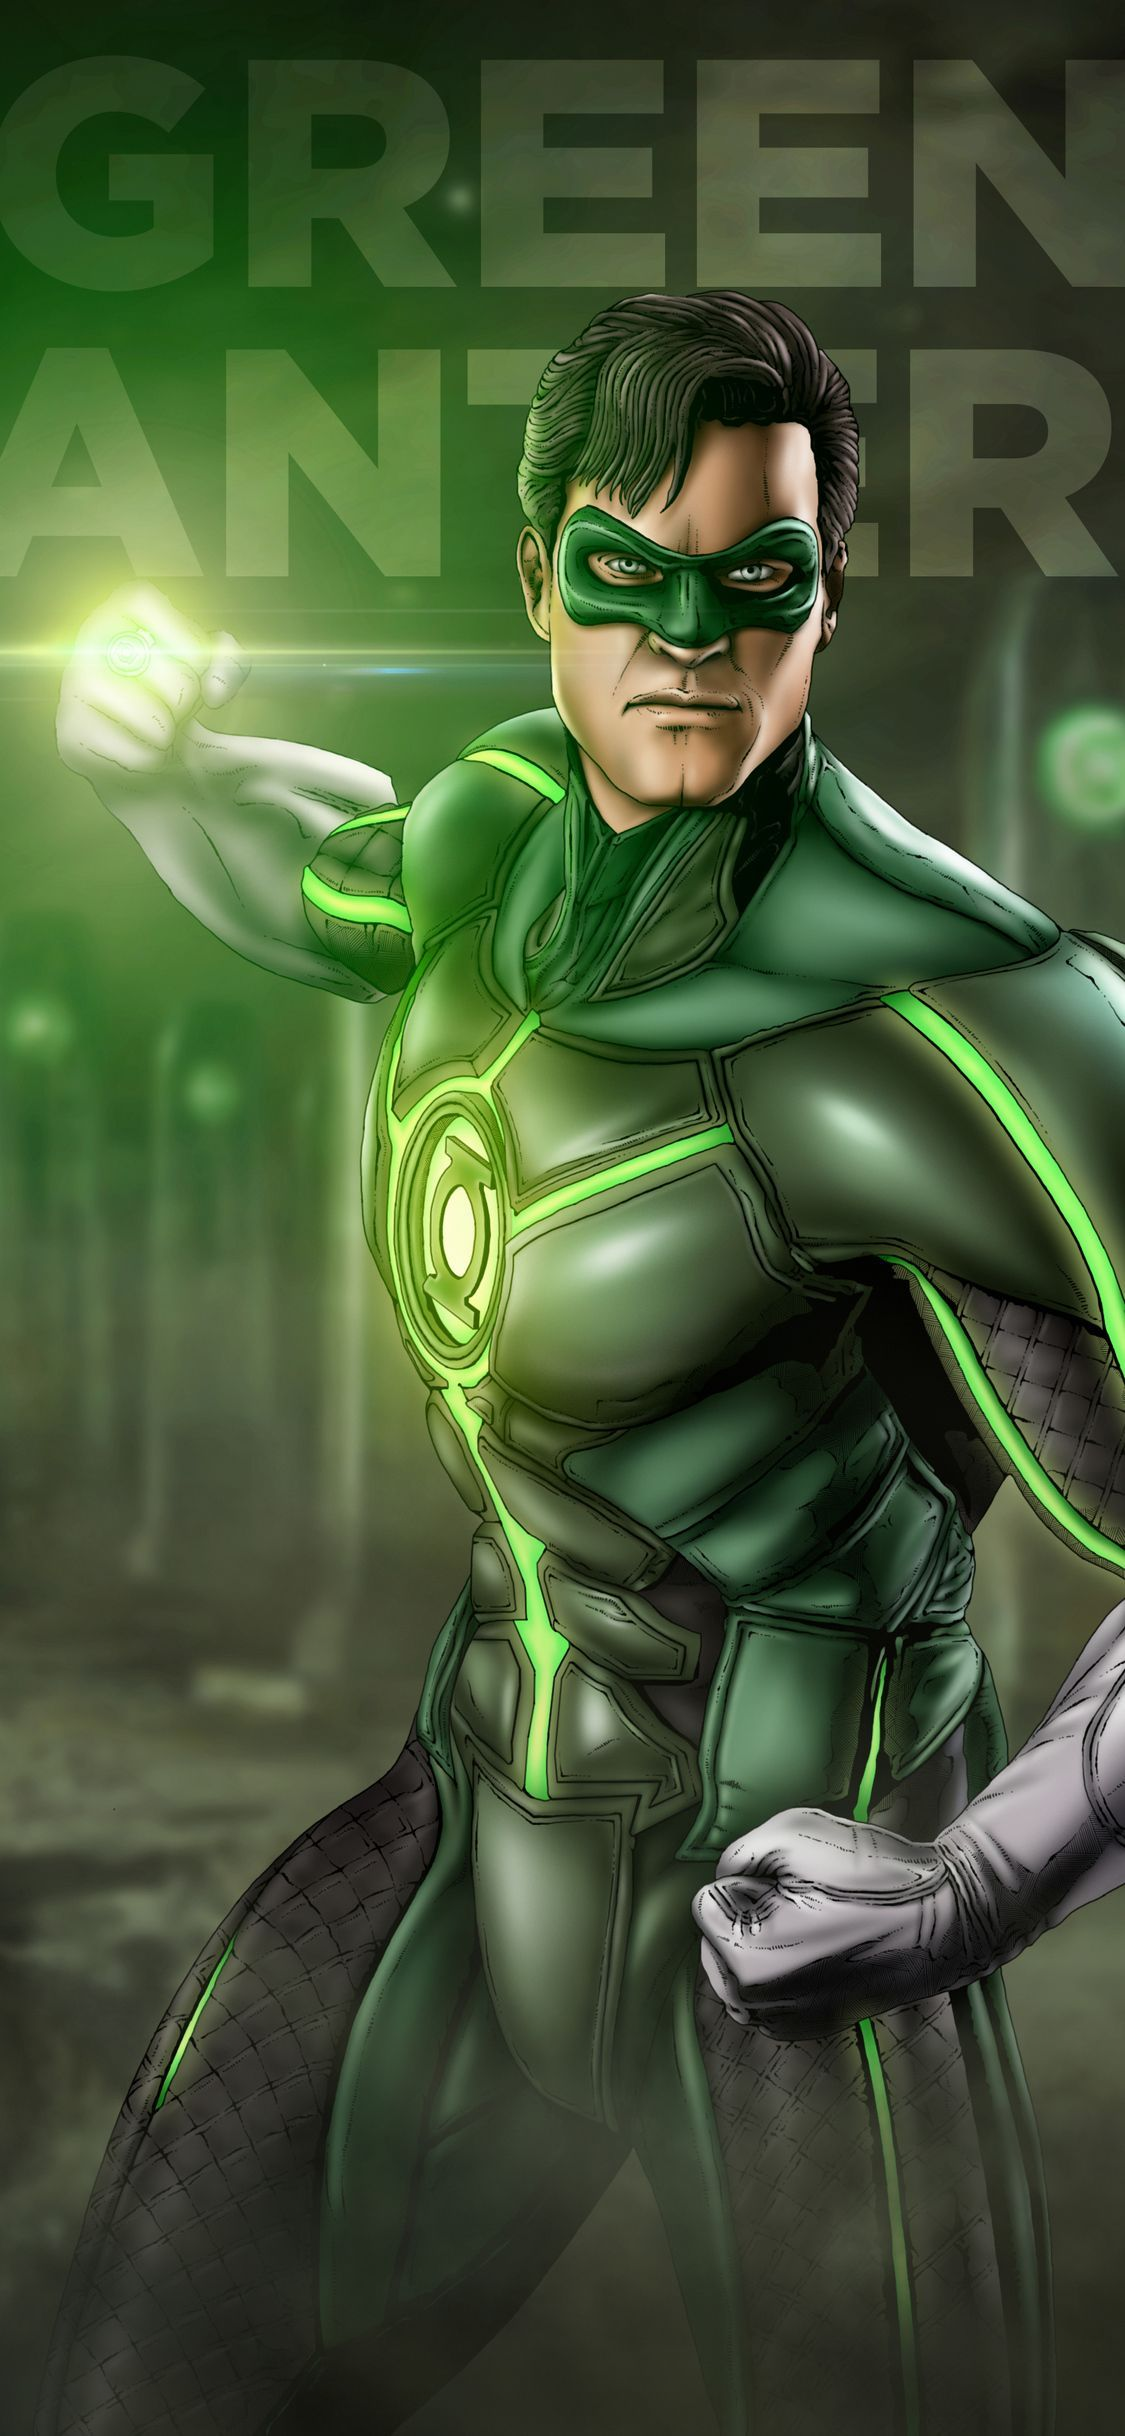 1125x2436 1125x2436 Green Lantern Artwork Iphone XS,Iphone 10,Iphone X ...